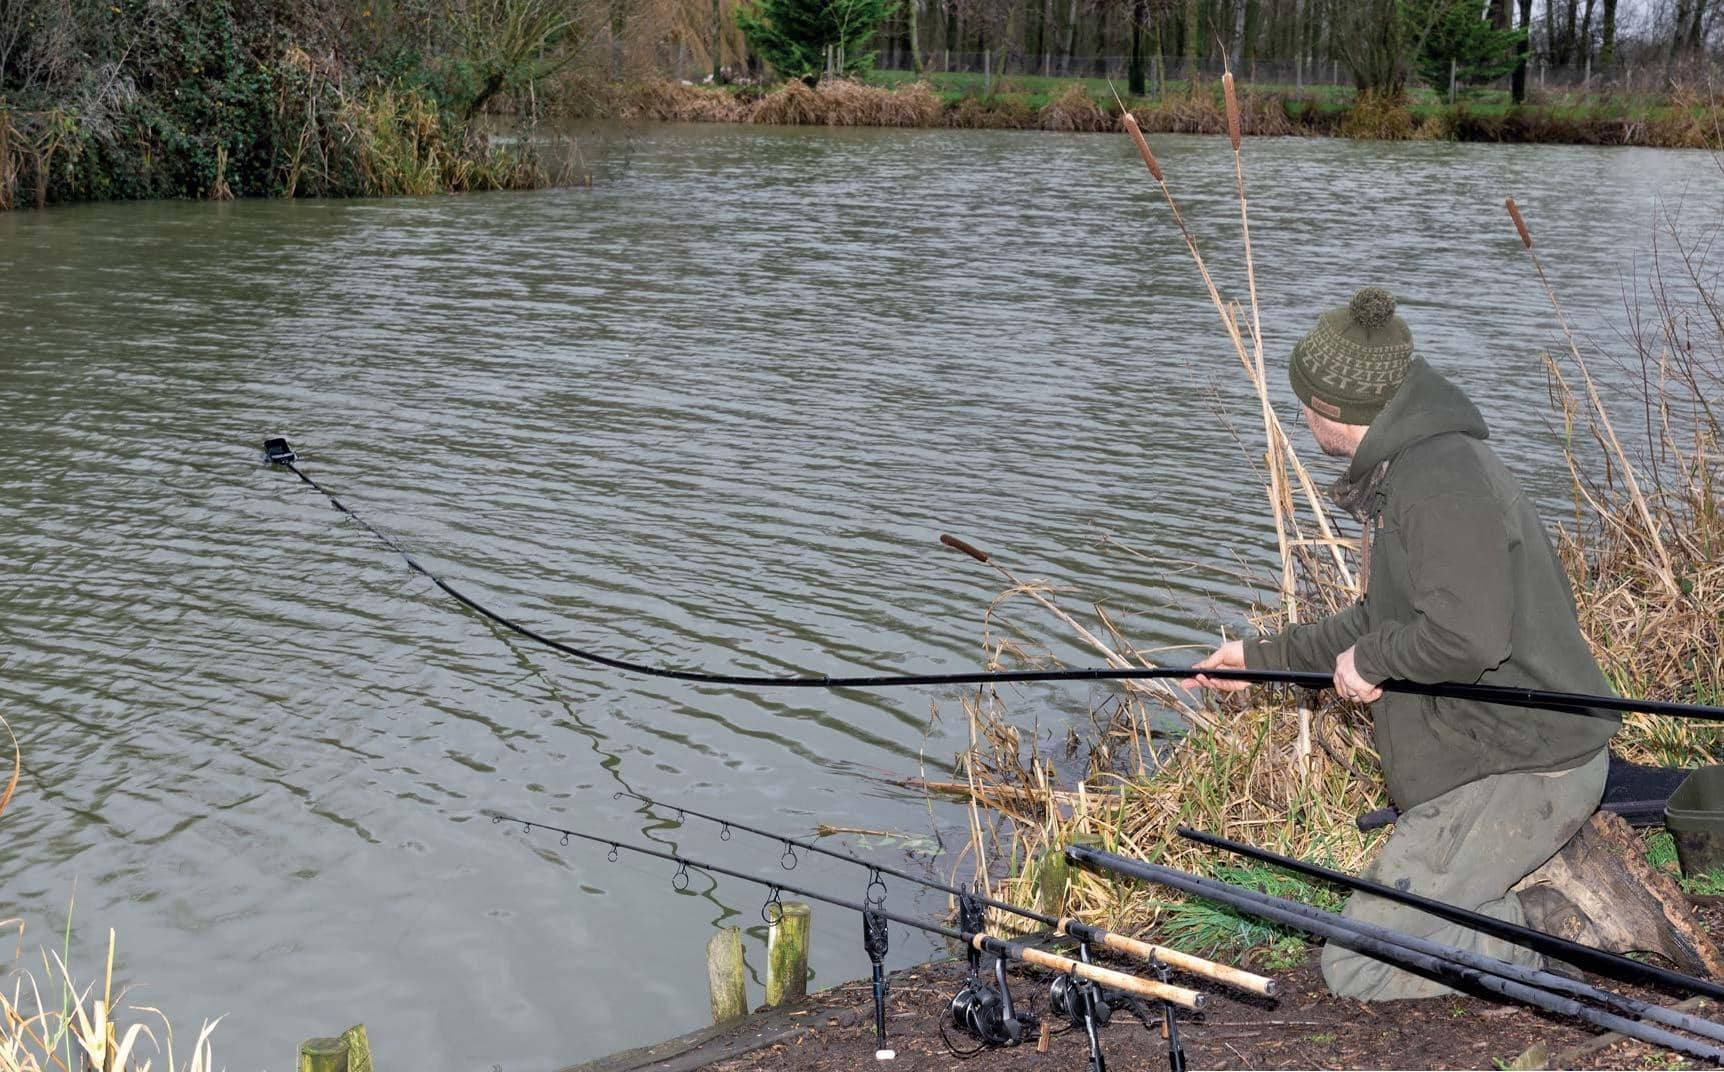 Pole position carping